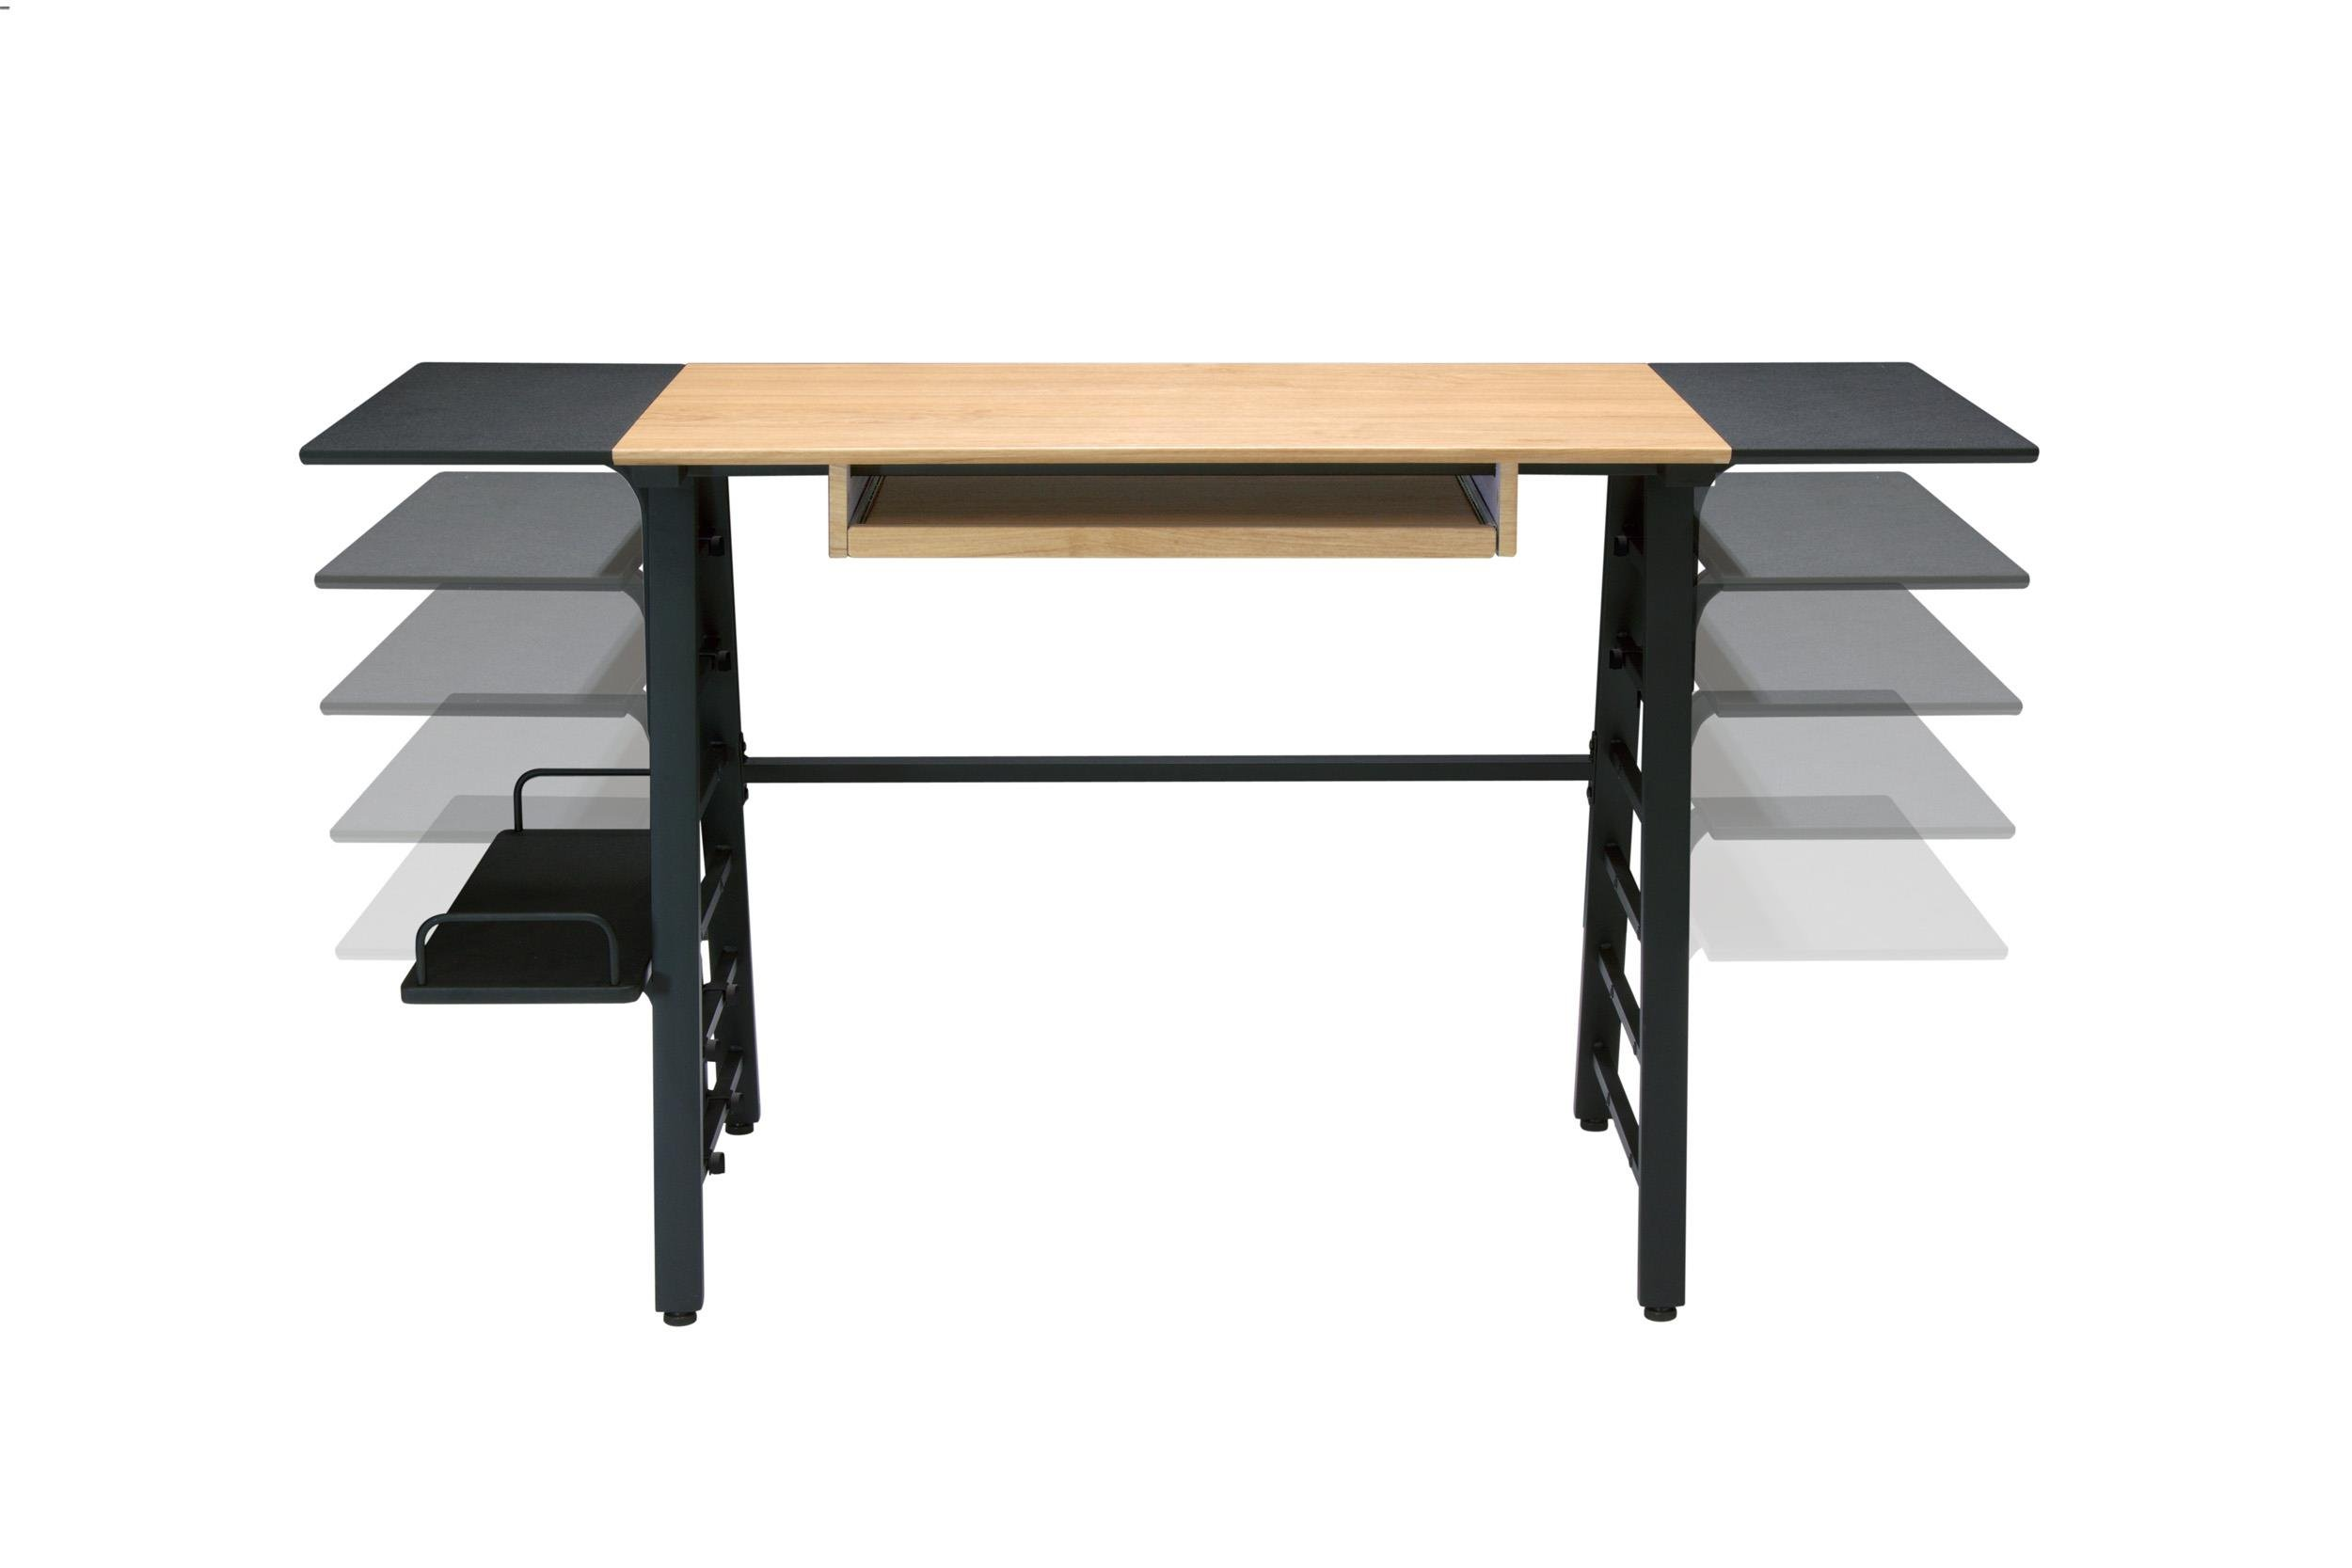 Calico Designs 51240 Convertible Art Drawing/Computer Desk Kids, Ashwood/Graphite